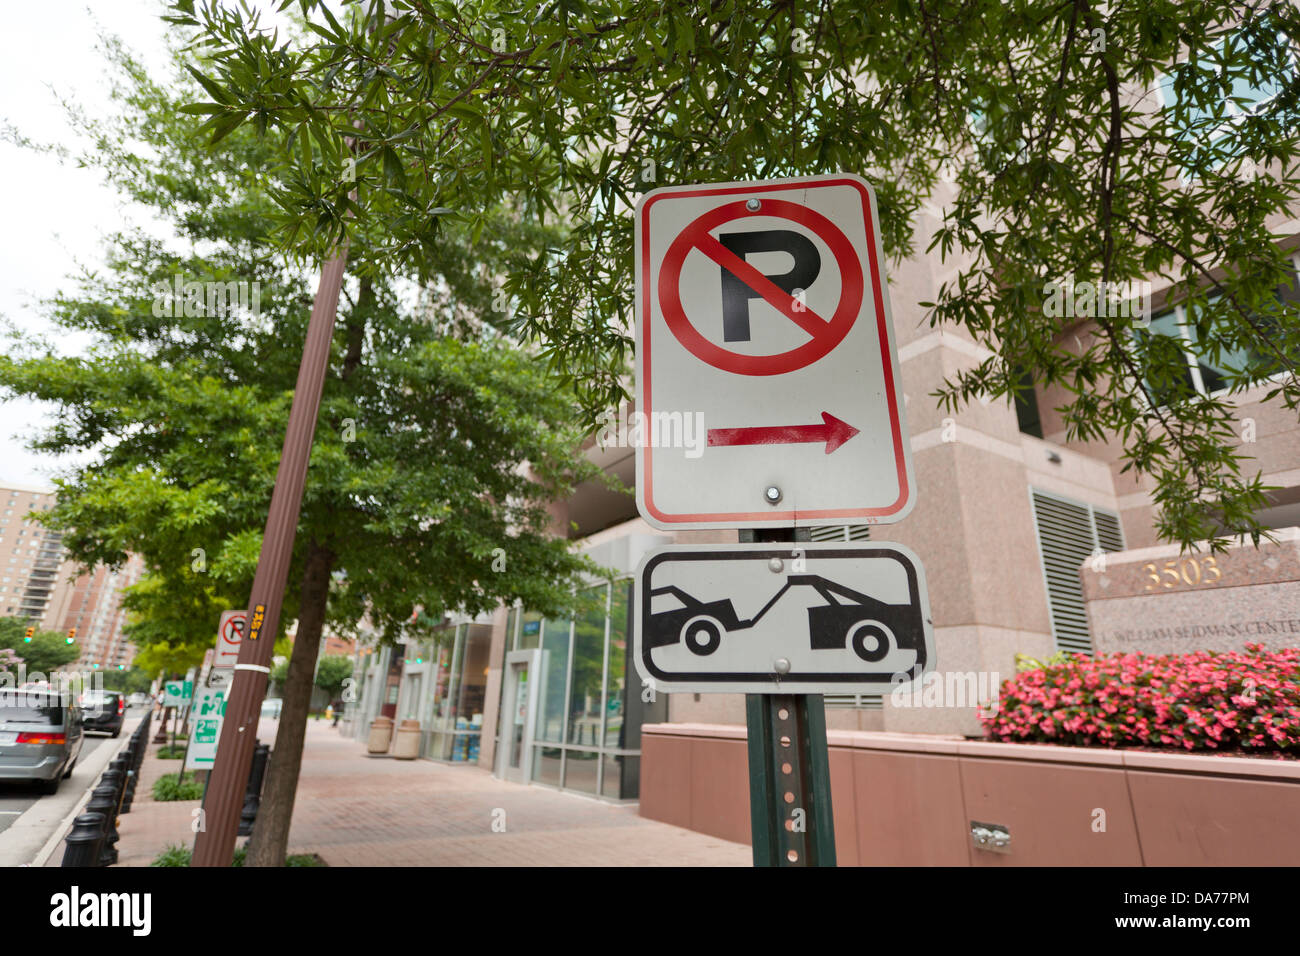 No Parking Tow Away zone sign - Stock Image